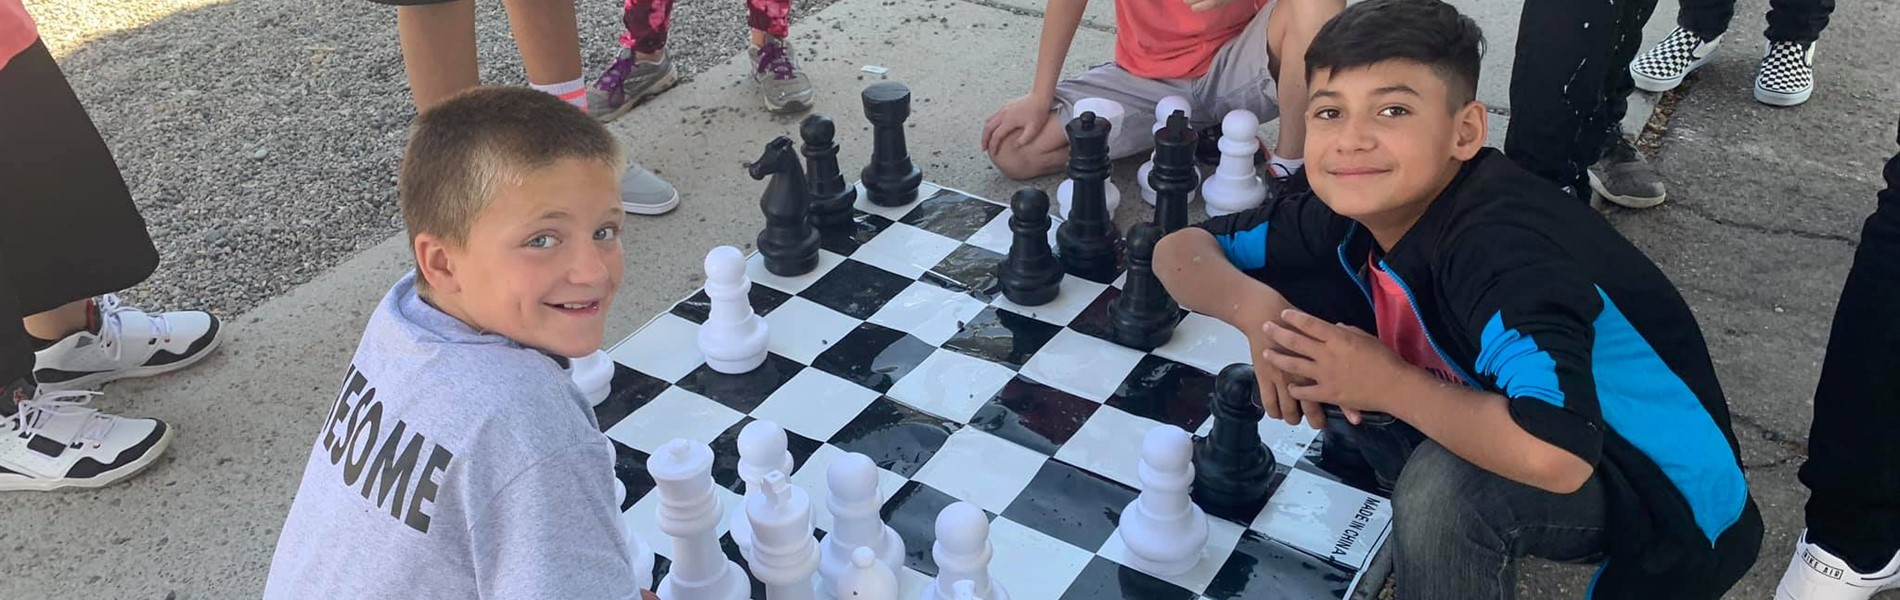 Students playing chess on the playground